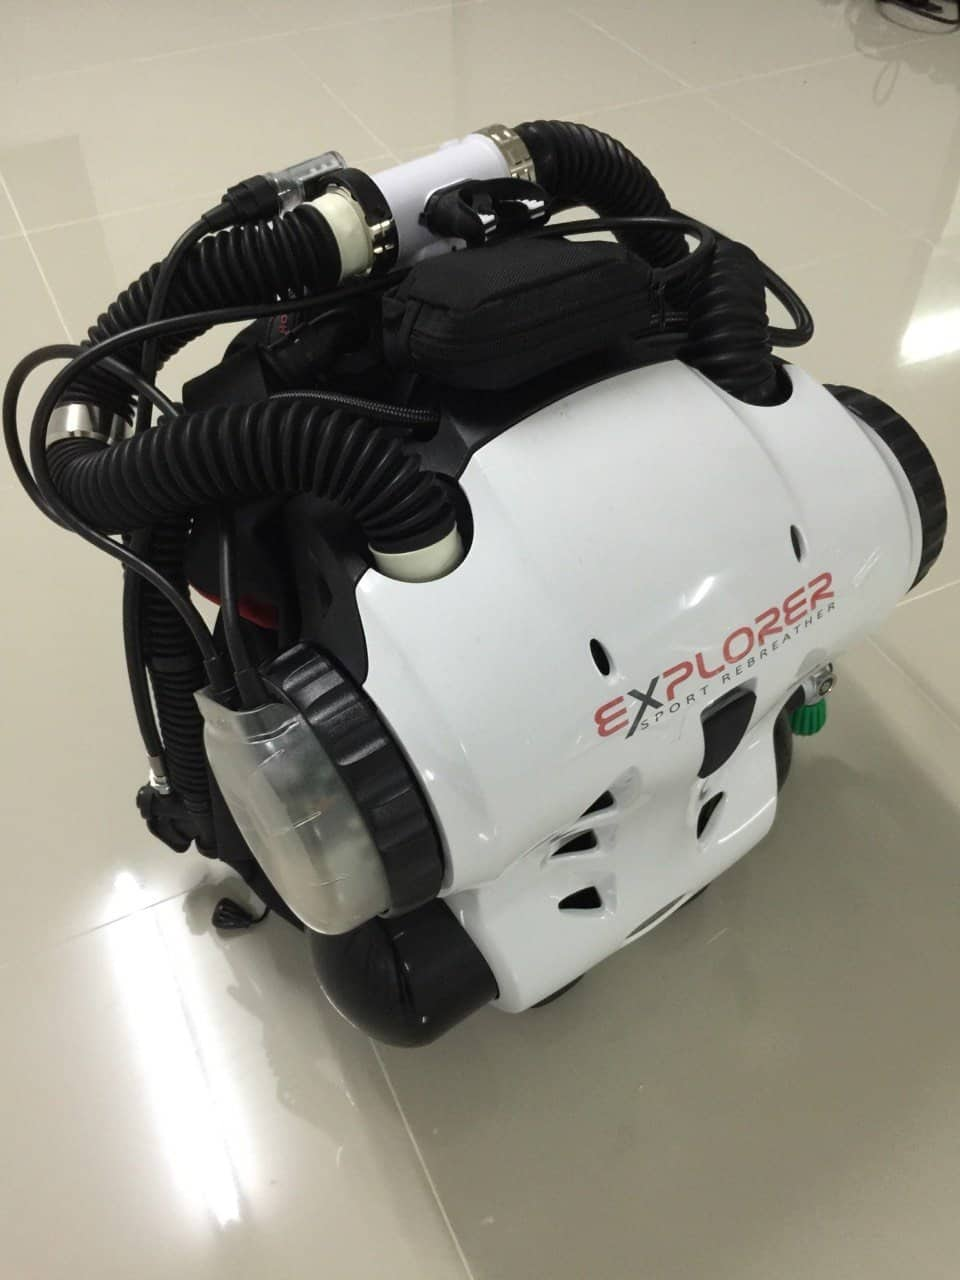 Hollis Explorer Rebreather for Scuba Divers - Using oxygen sensors and a PPO set point to keep you safe.